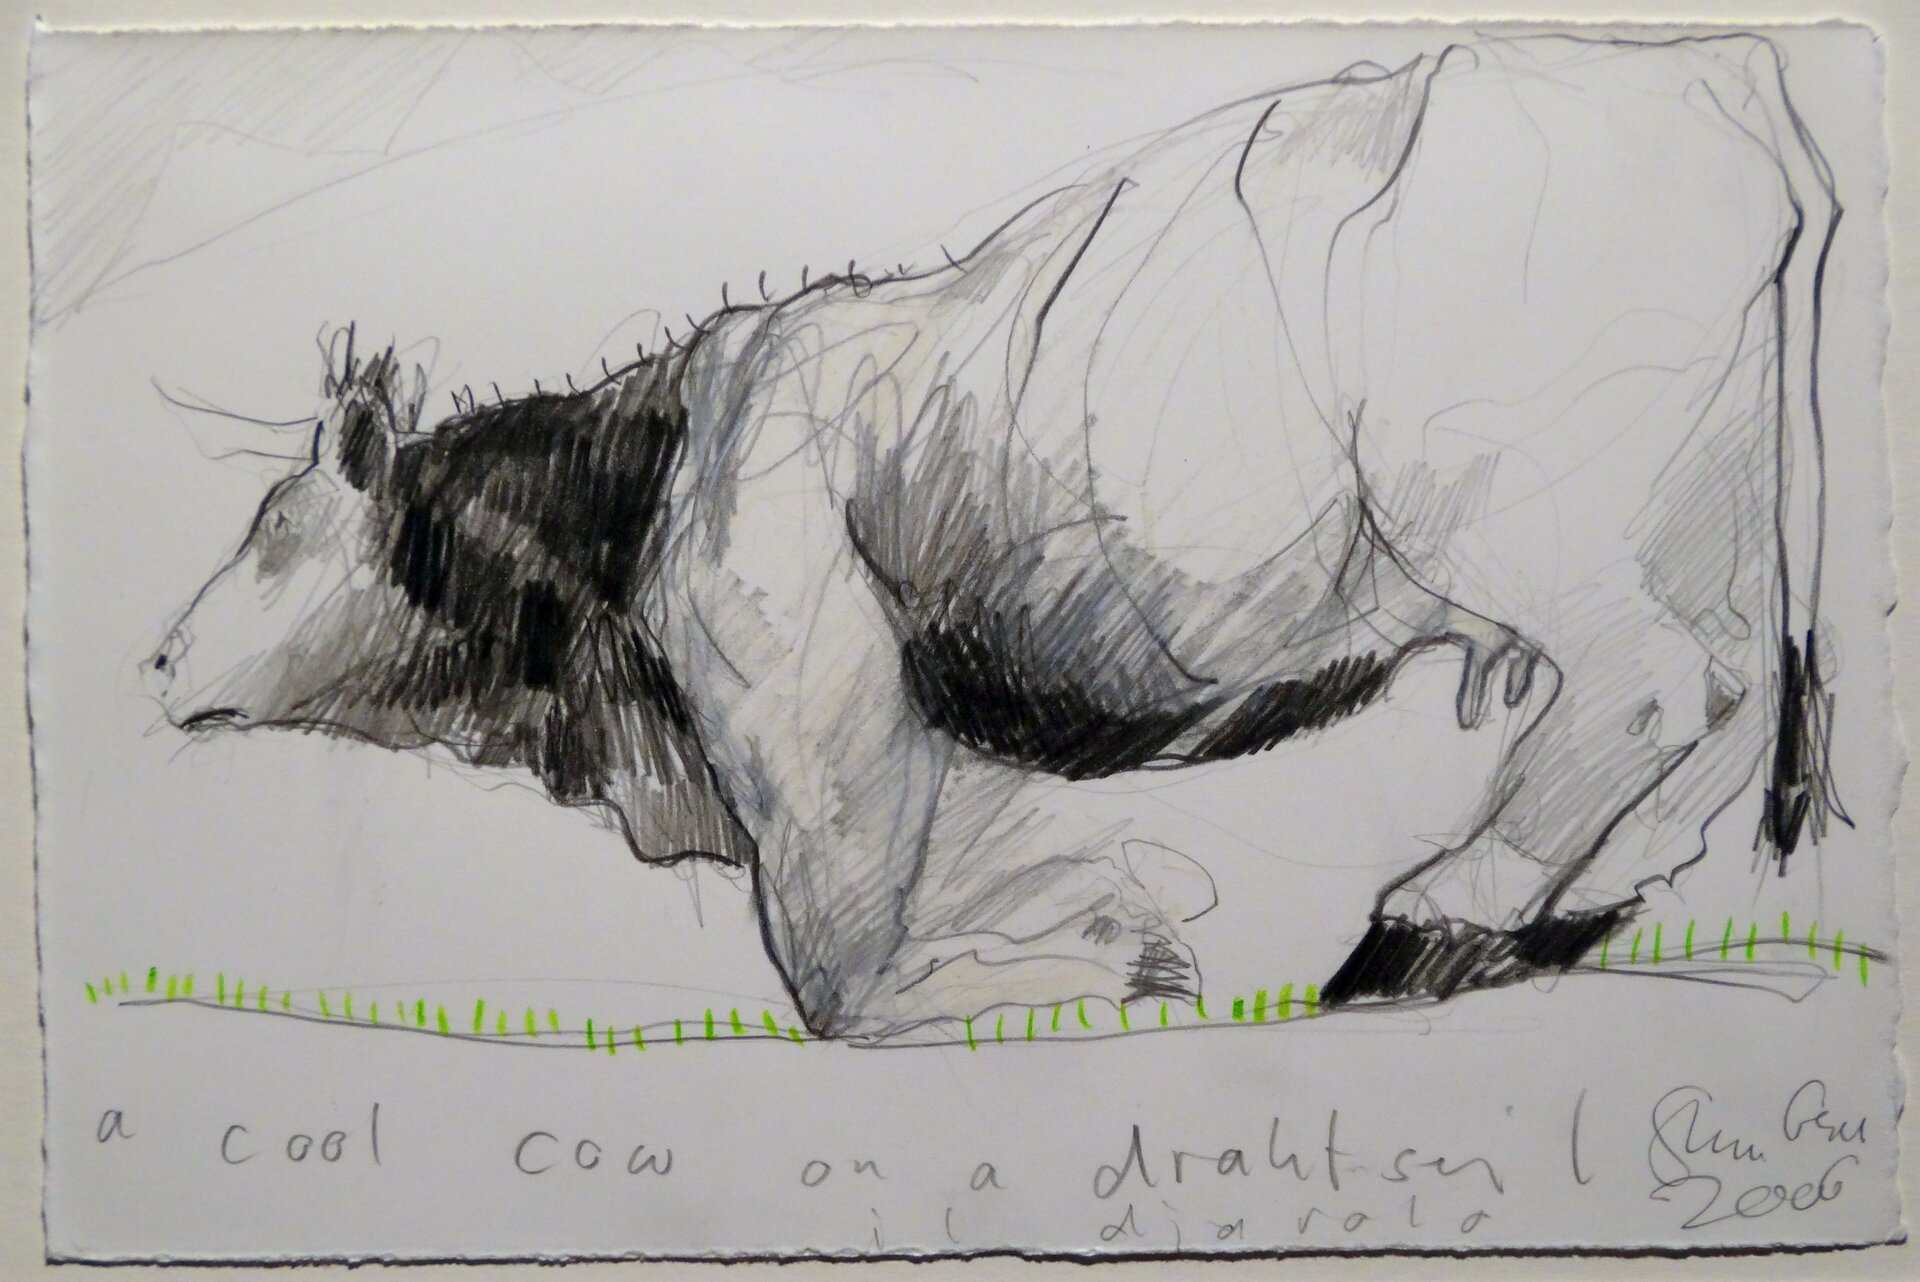 a cool cow on a drahtseil